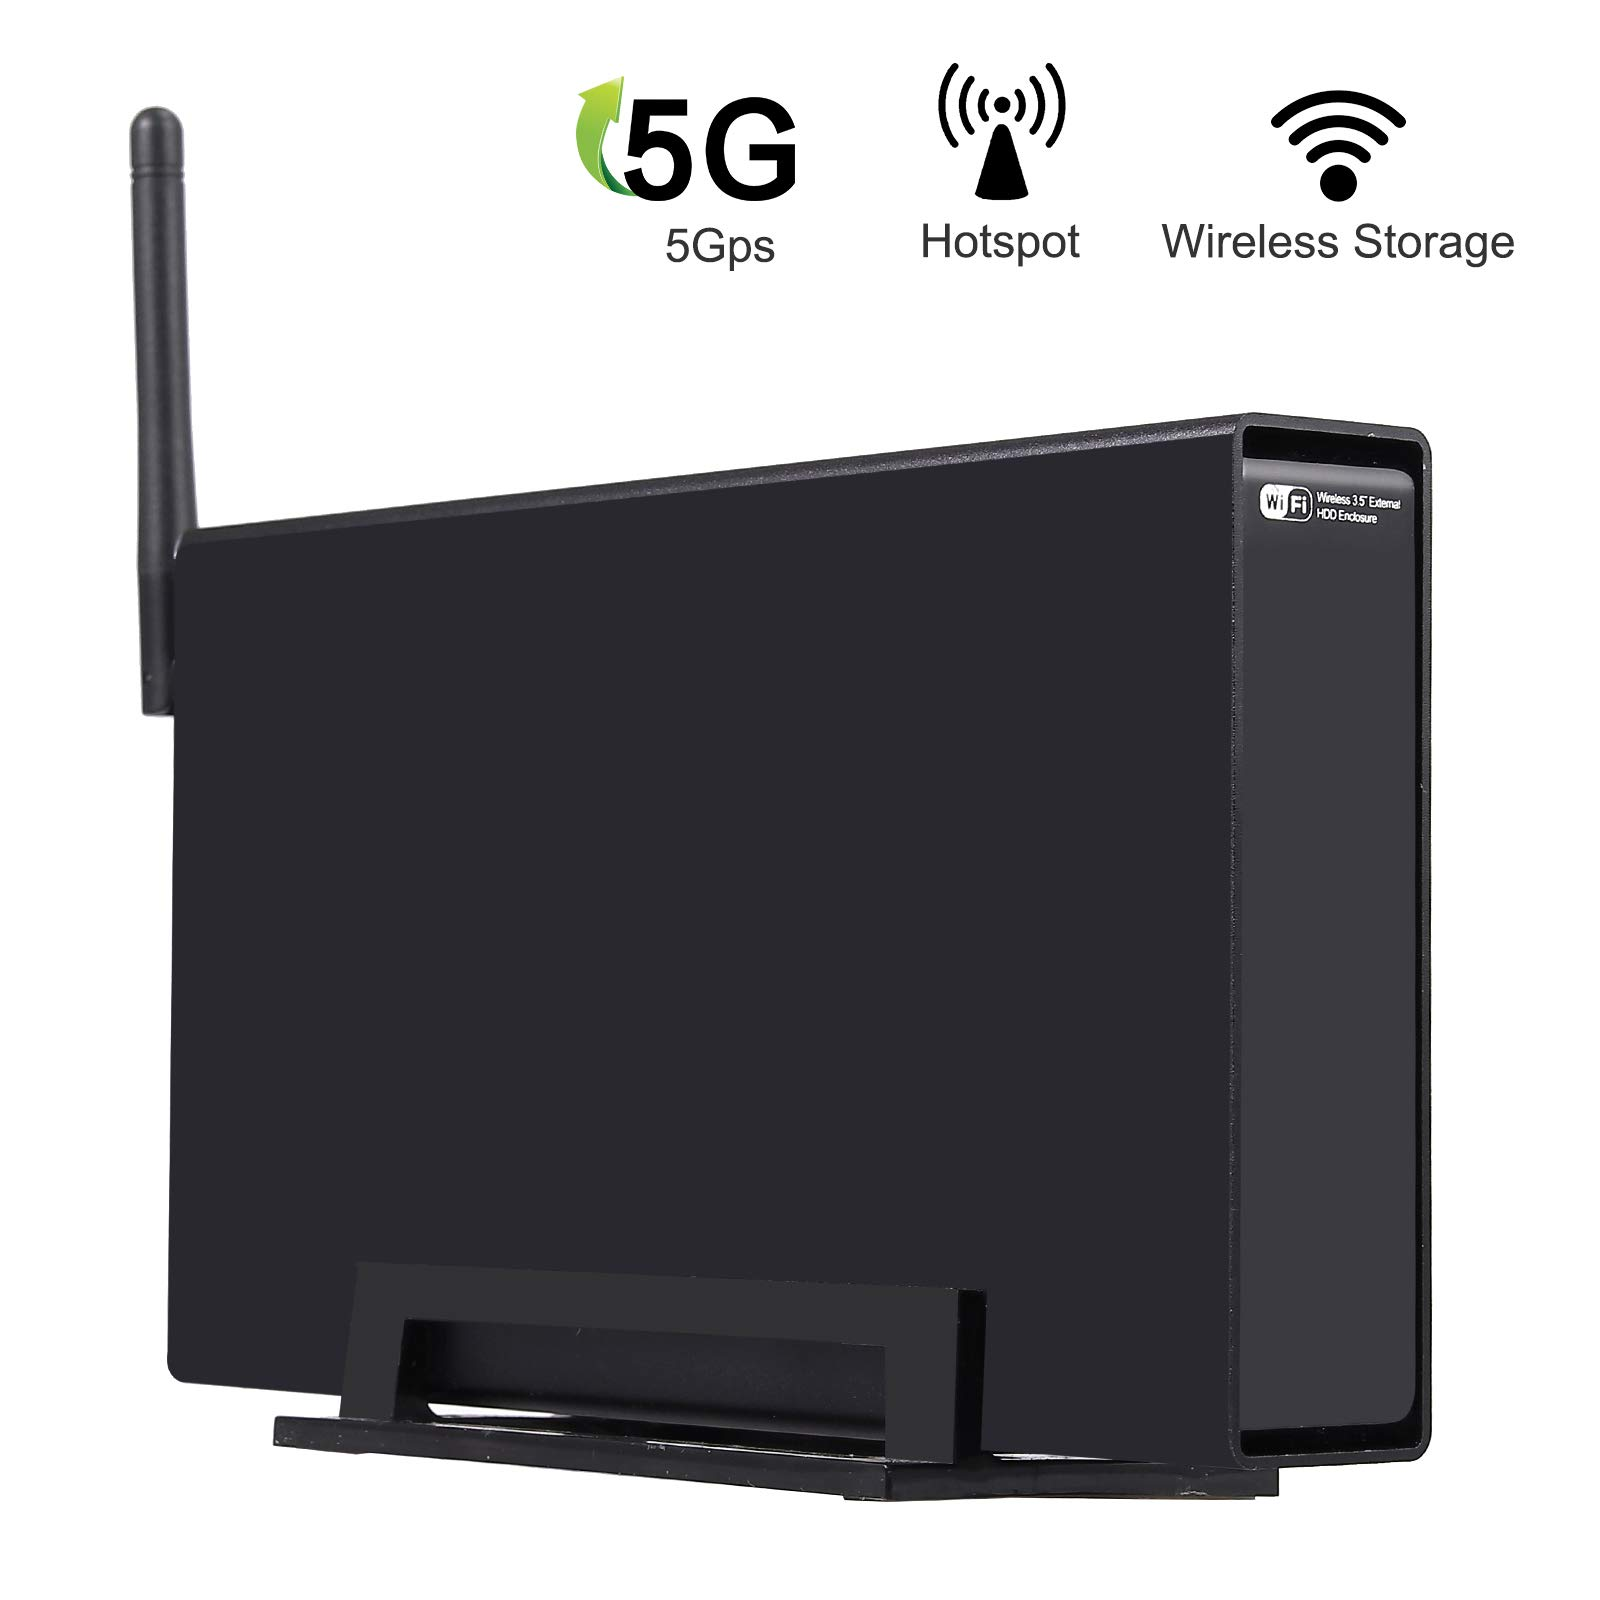 LiNKFOR NAS Station Private Cloud Network Attached Storage 1 Bay USB 3.0 to Sata 6TB with WiFi HDD Enclosure case 3.5 inch with 300M Wireless WiFi Router (NOT Including The Hard Disk)